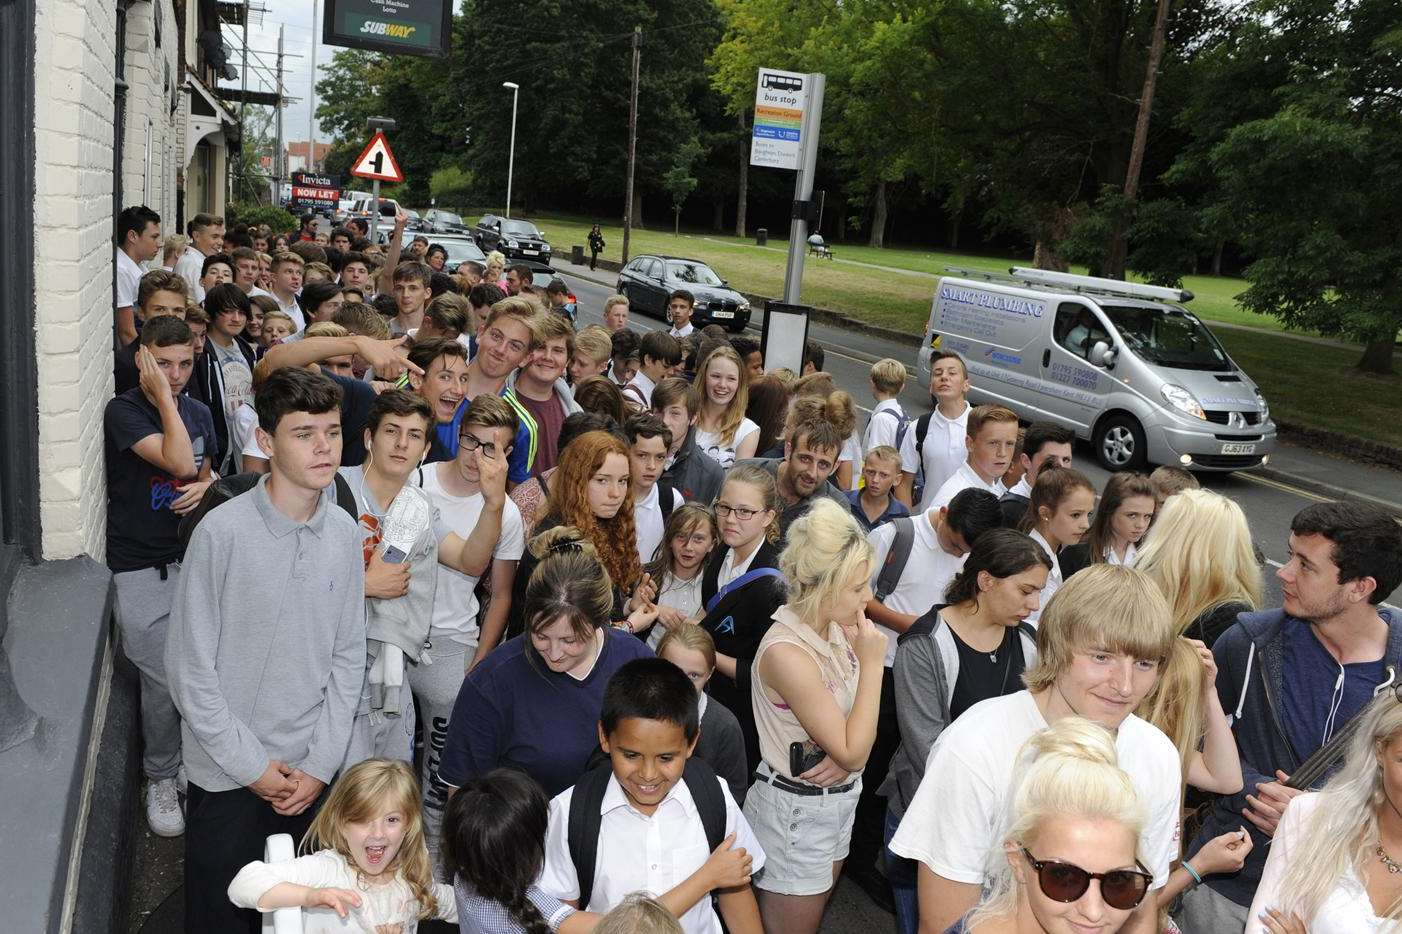 The queues for the new Subway in Faversham